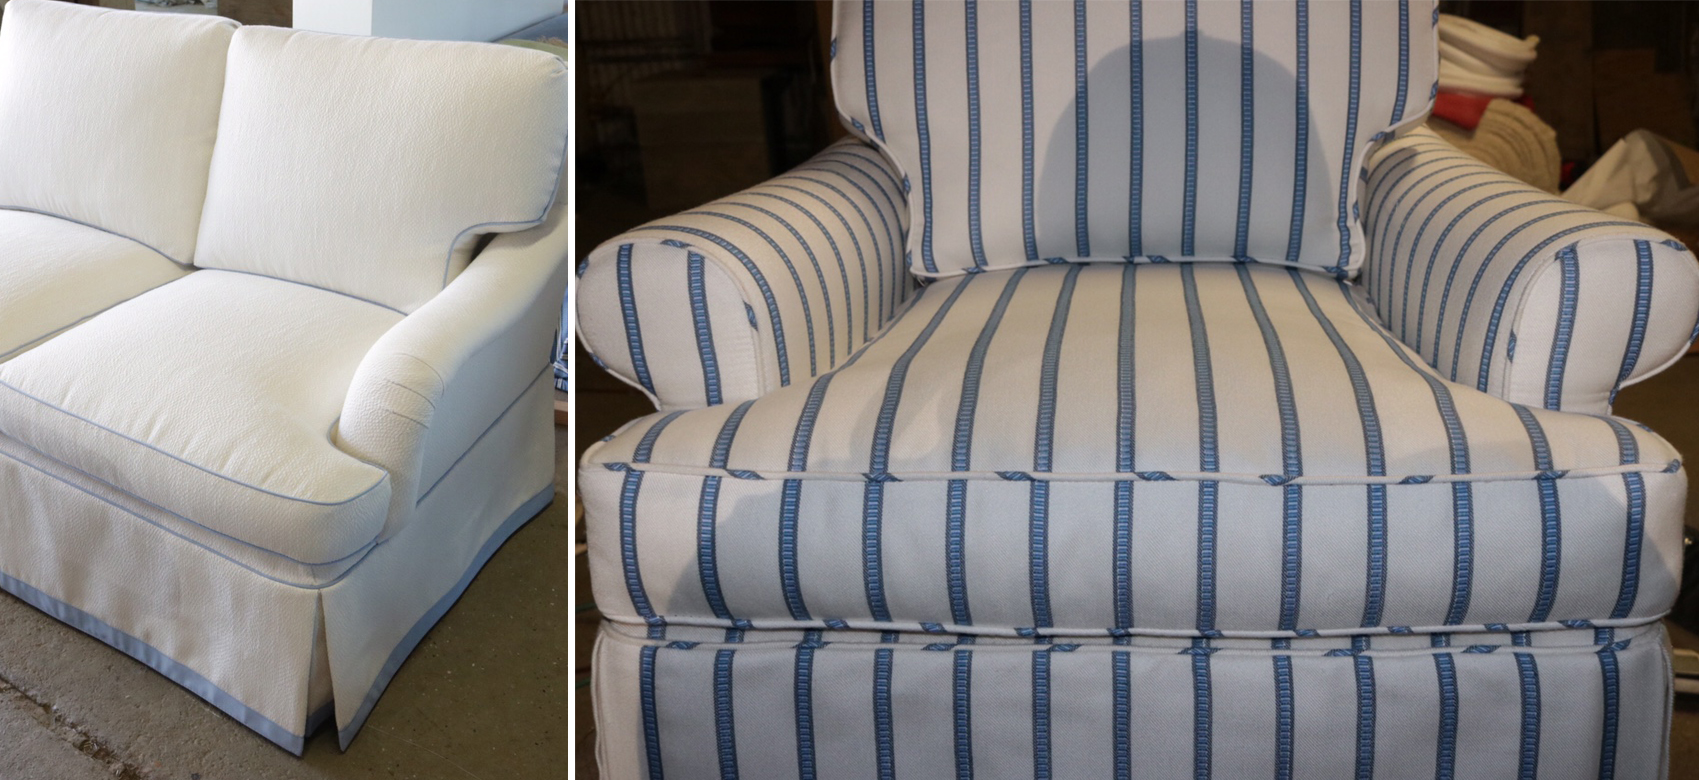 Snapshot from IBM Upholstery sharing newly reupholstered sofa and chairs using Stroheim and Fabricut performance fabrics